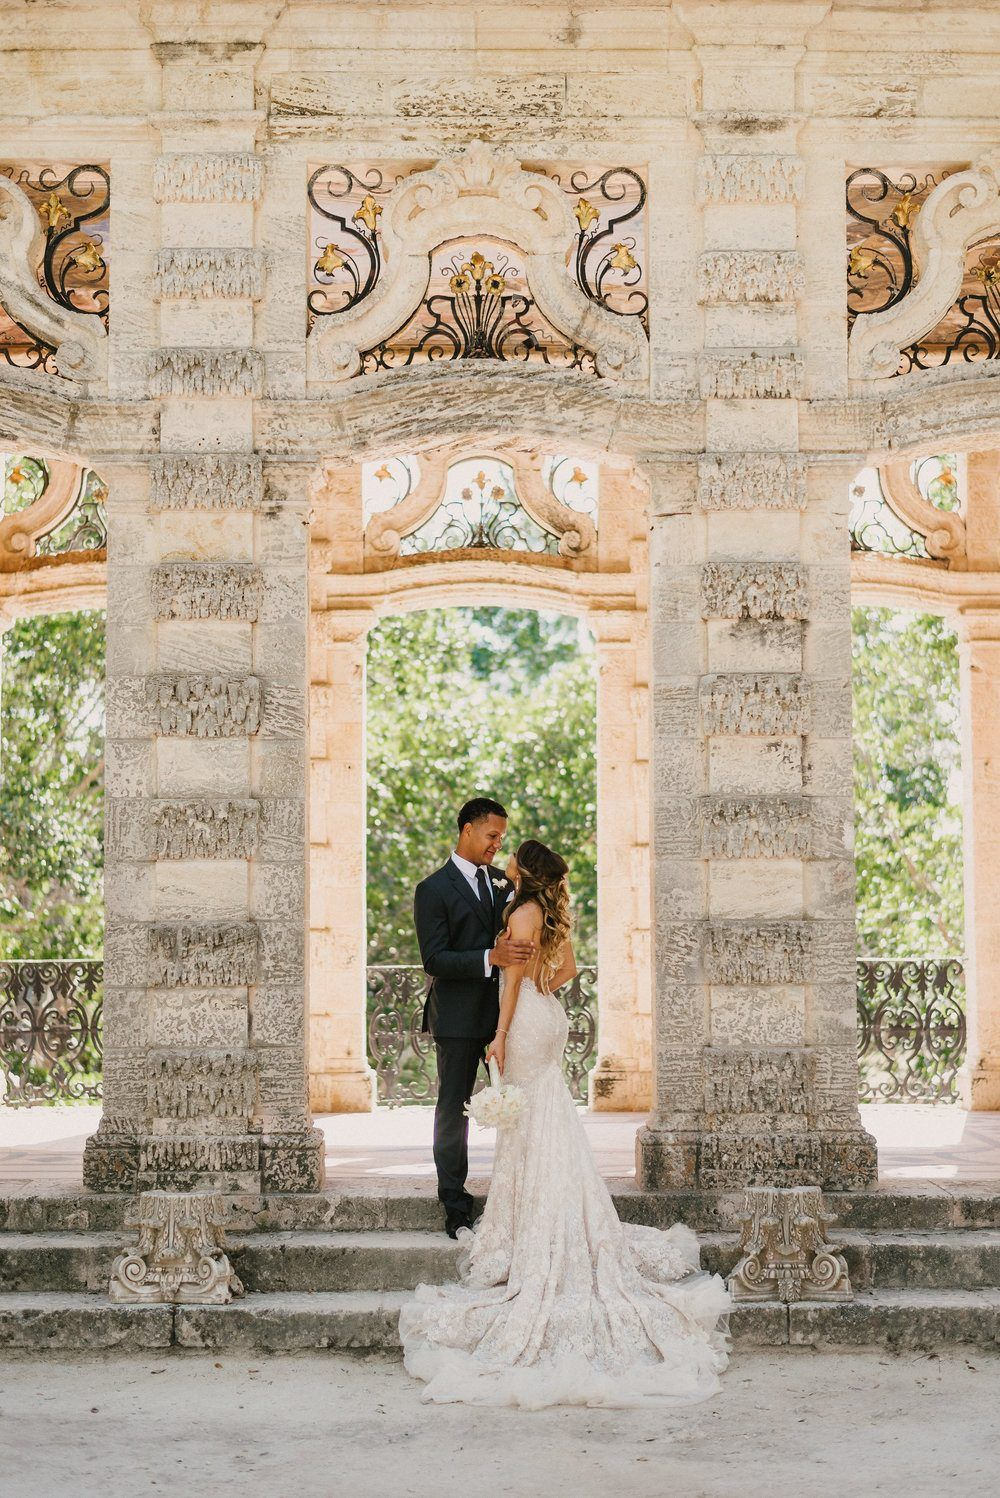 This Miami Wedding Glows Up With Reception Lantern Glory Modern Fashion Tropical Palm Fronds And Industrial Color Bloc Vizcaya Wedding Wedding Museum Wedding